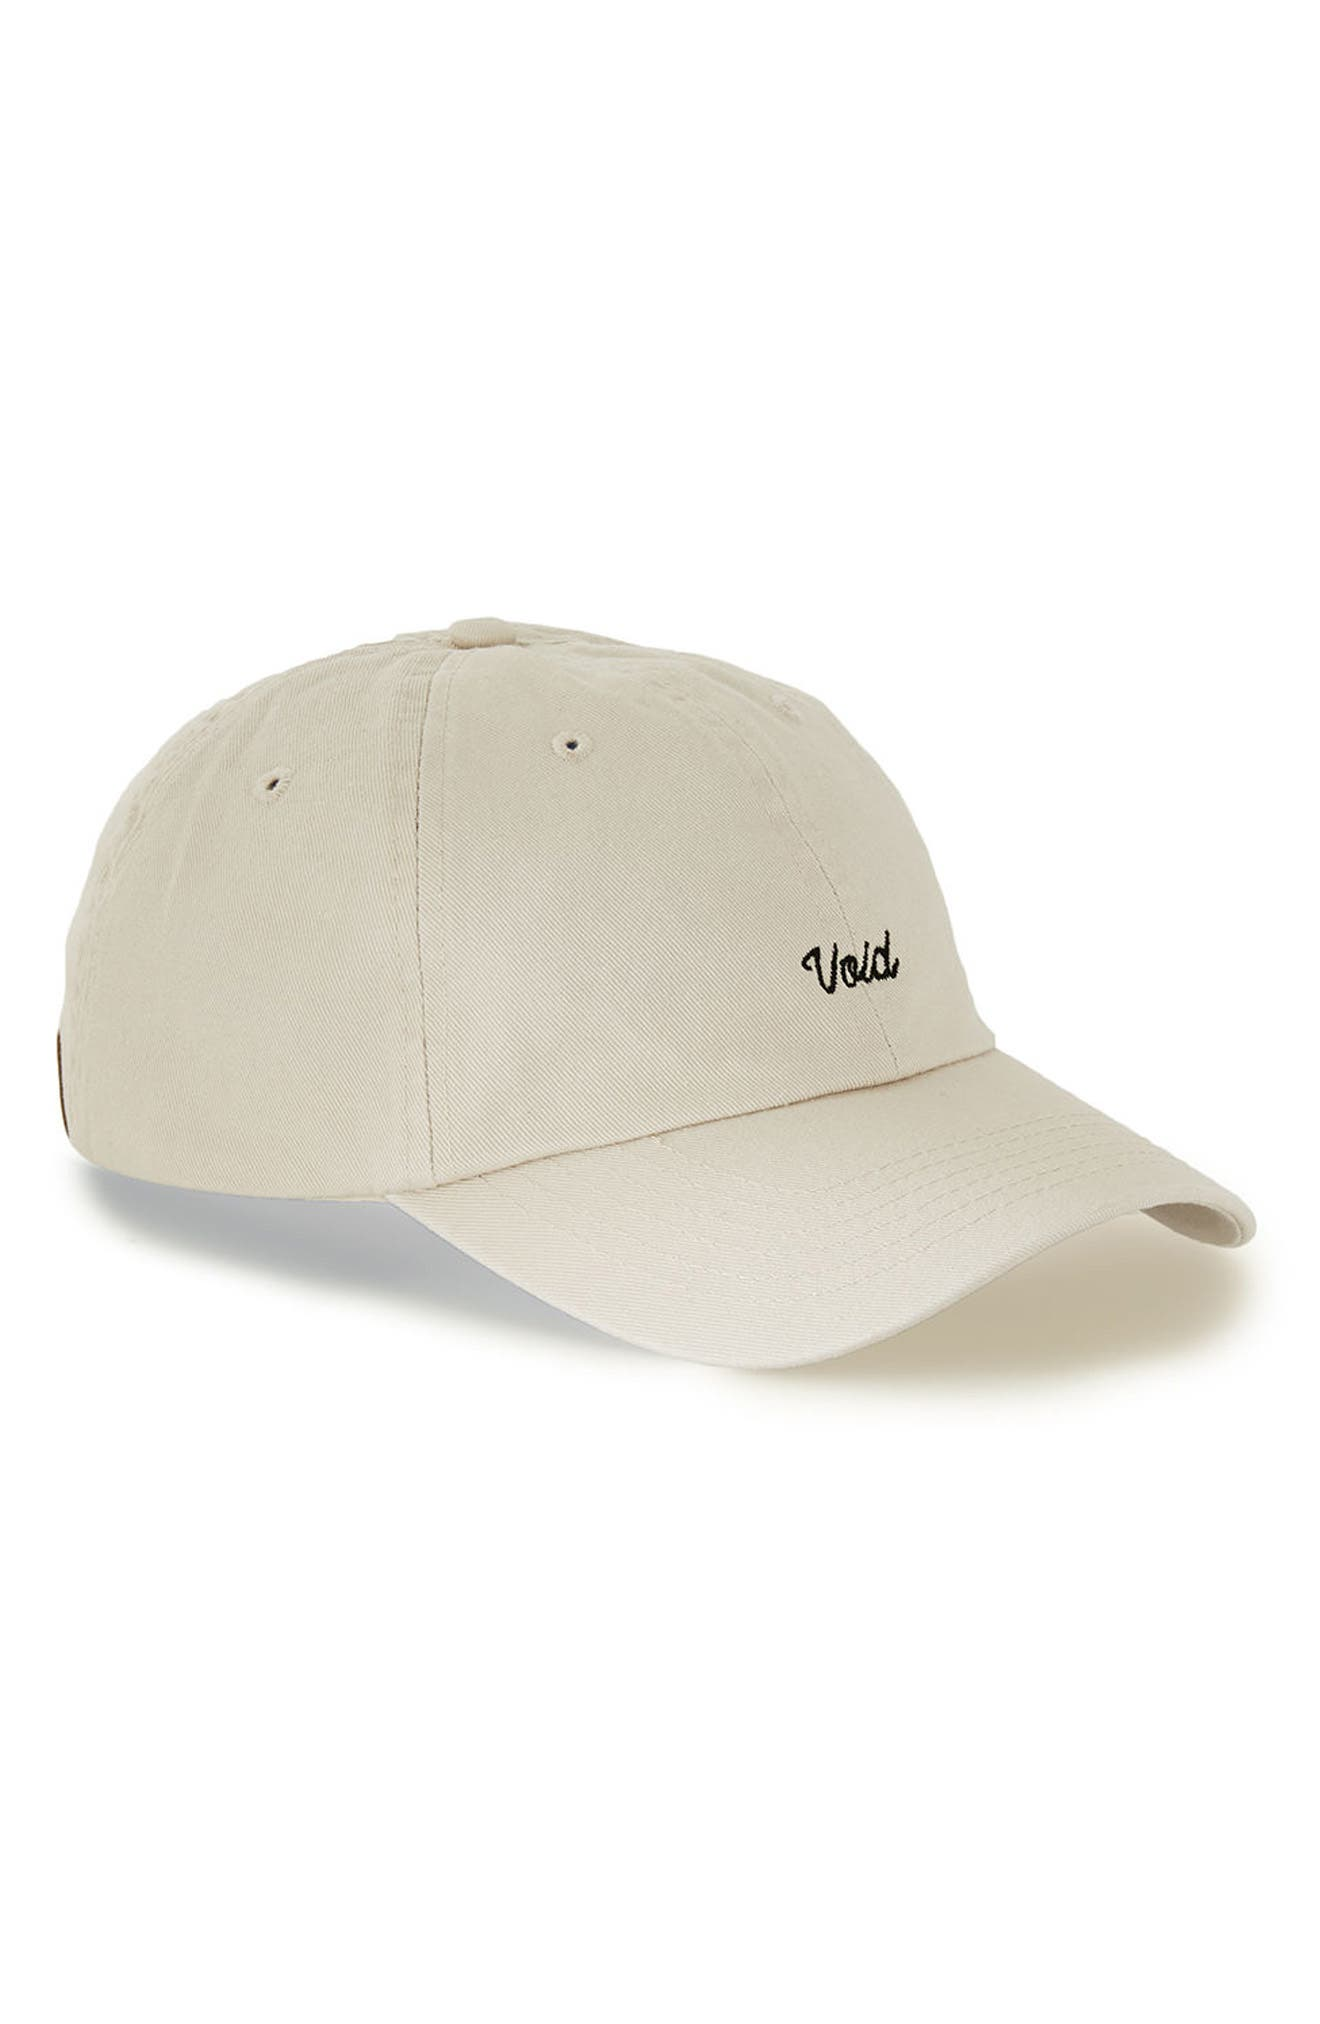 Topman Embroidered Void Dad Ball Cap